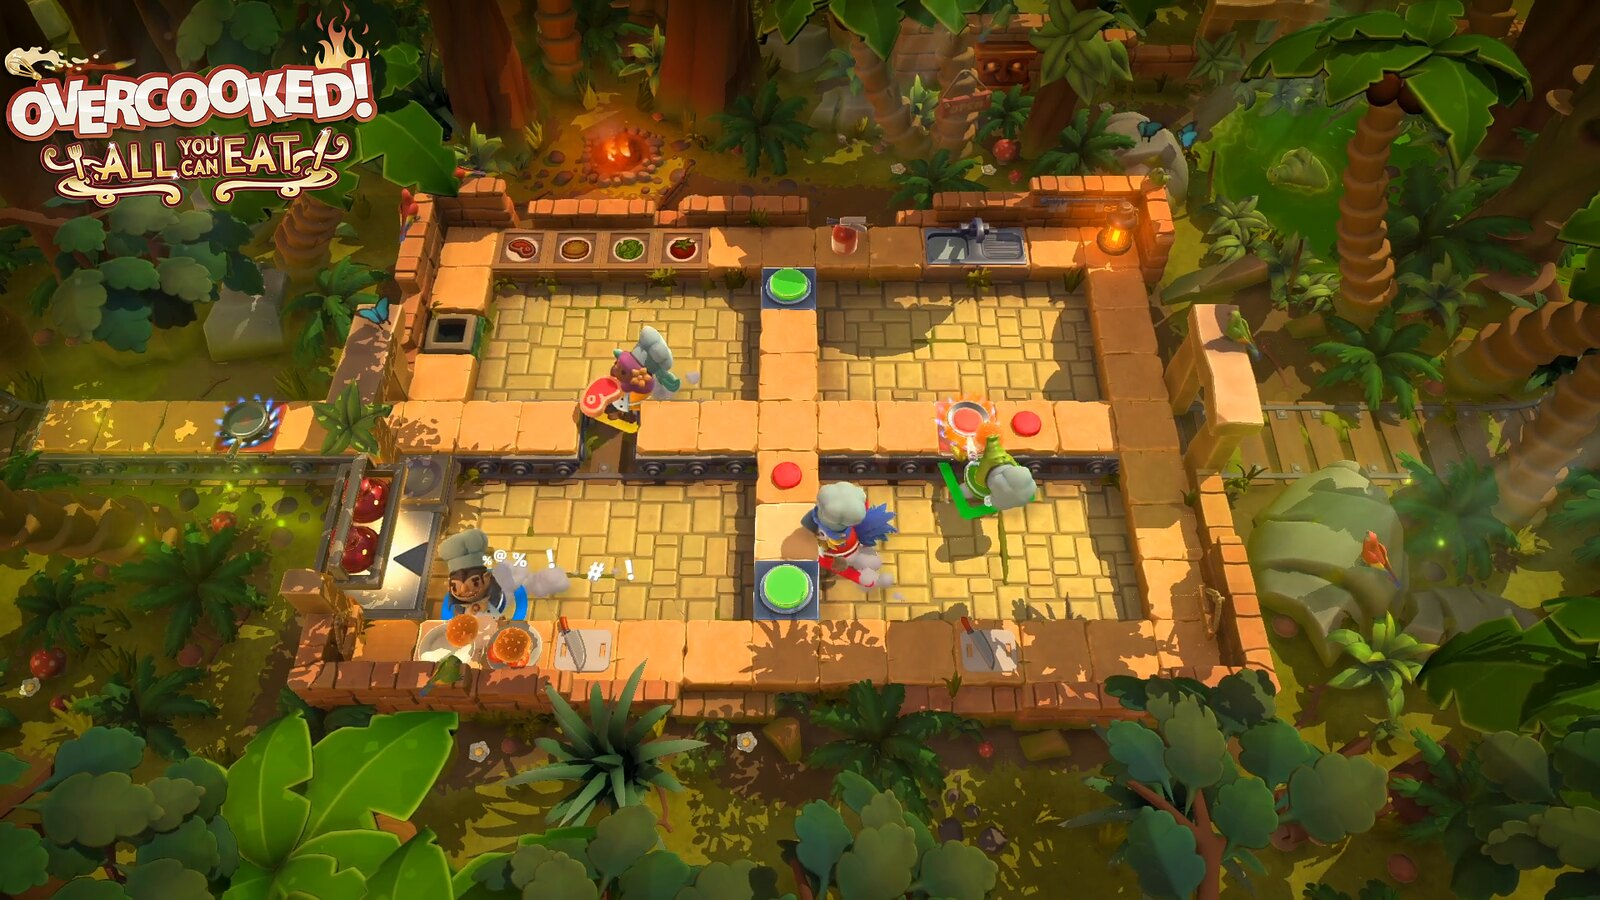 50133647068 6536772b91 h - Overcooked! All You Can Eat – ein Augenschmaus für PS5